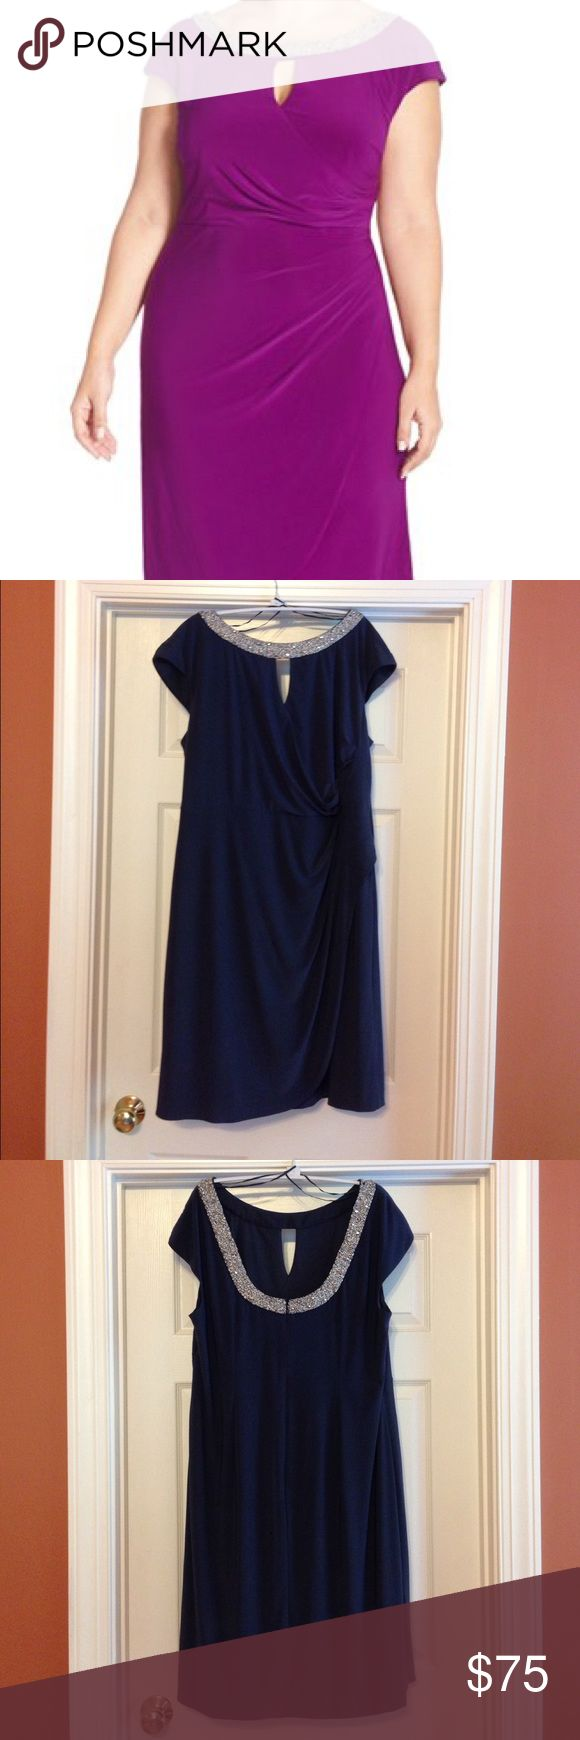 Alex Evenings Plus Size Faux Wrap Cocktail Dress Alex Evenings faux wrap cocktail dress with beautiful silver beaded neckline, keyhole detail, moderate scoop back and cap sleeves. Medium steel blue matte jersey (95% polyester, 5% spandex) as shown in last picture. ***Disclaimer - actual size on tag is 16W. Runs large per my experience and per Nordstrom's website, fits like a 18W. Worn once. In excellent condition. No defects. Hand wash! Pink cover photo from Nordstroms.com to show fit. Smoke…